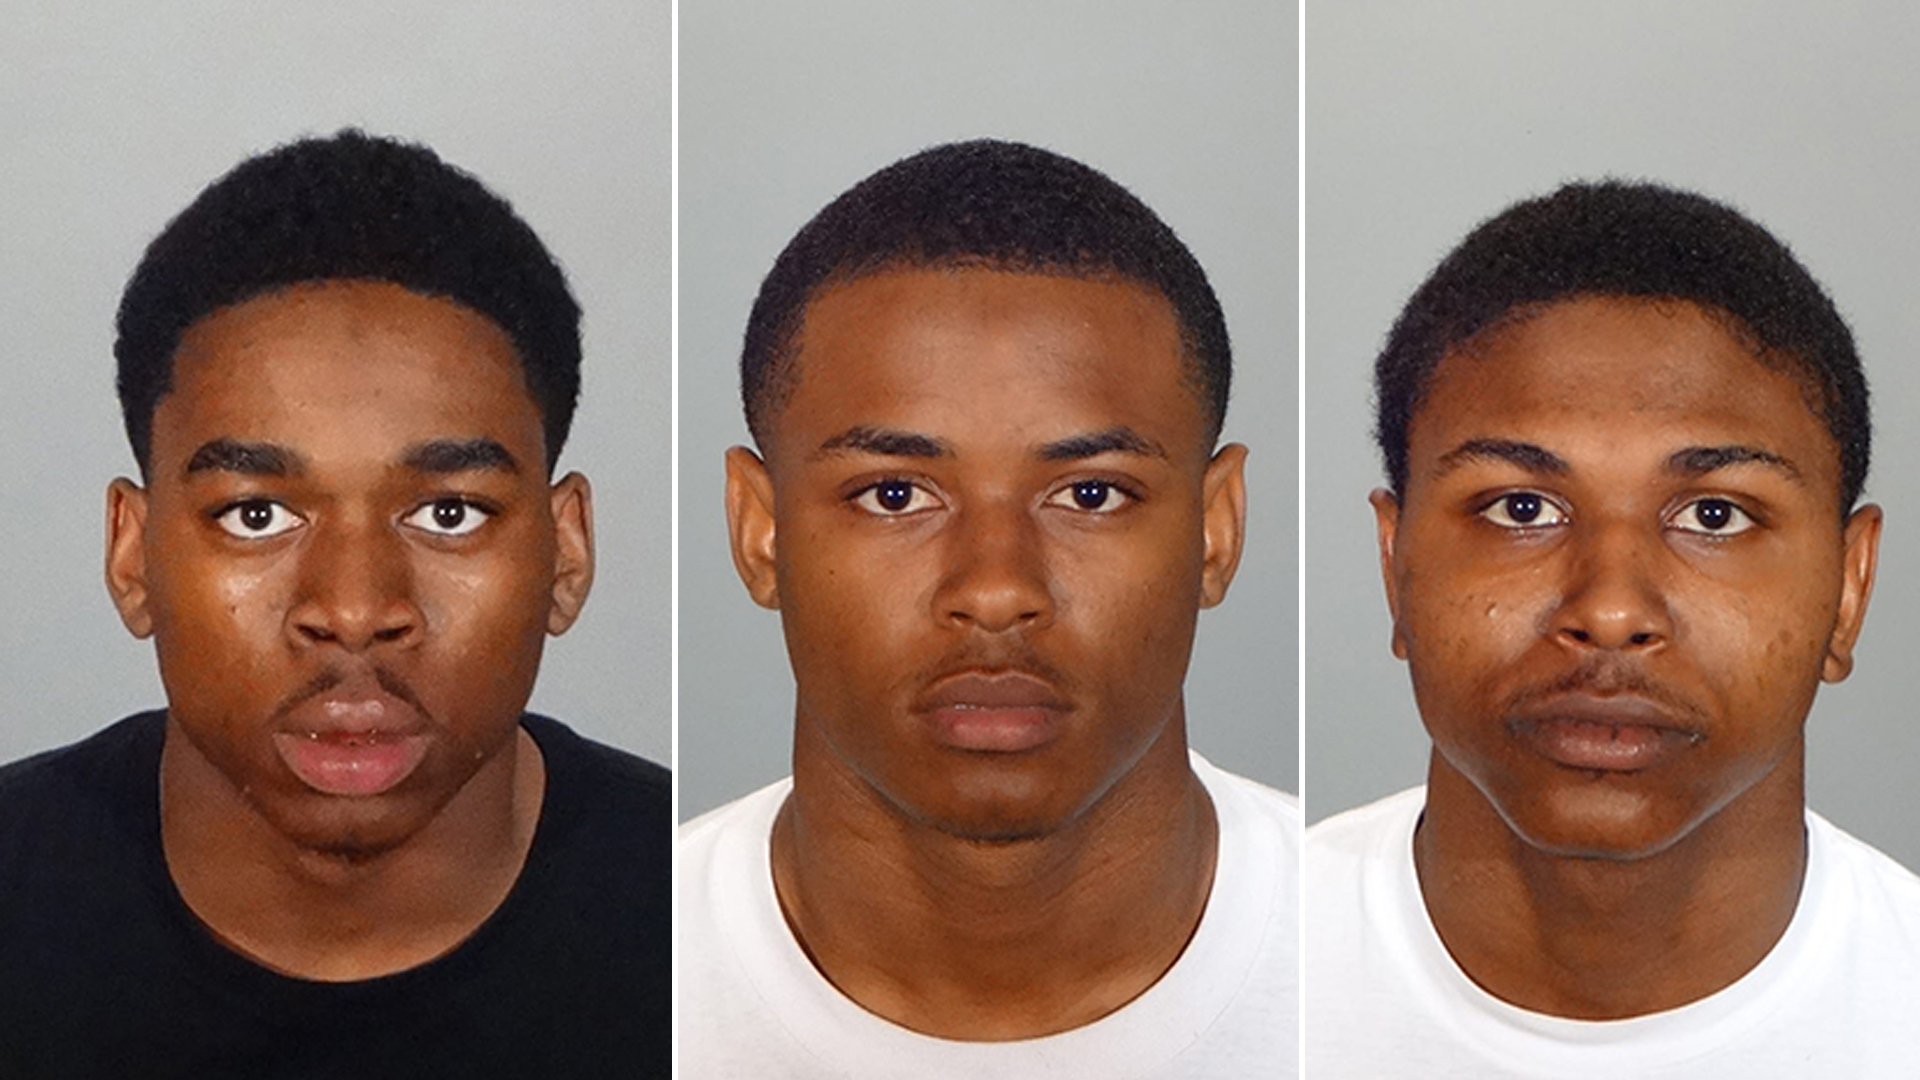 Anthony Henderson, 19, (left) Emajea Porter, 18, (center) and Jordan Maclamore, 18, (right) appear in booking photos provided by the Glendale Police Department on Feb. 20, 2019.